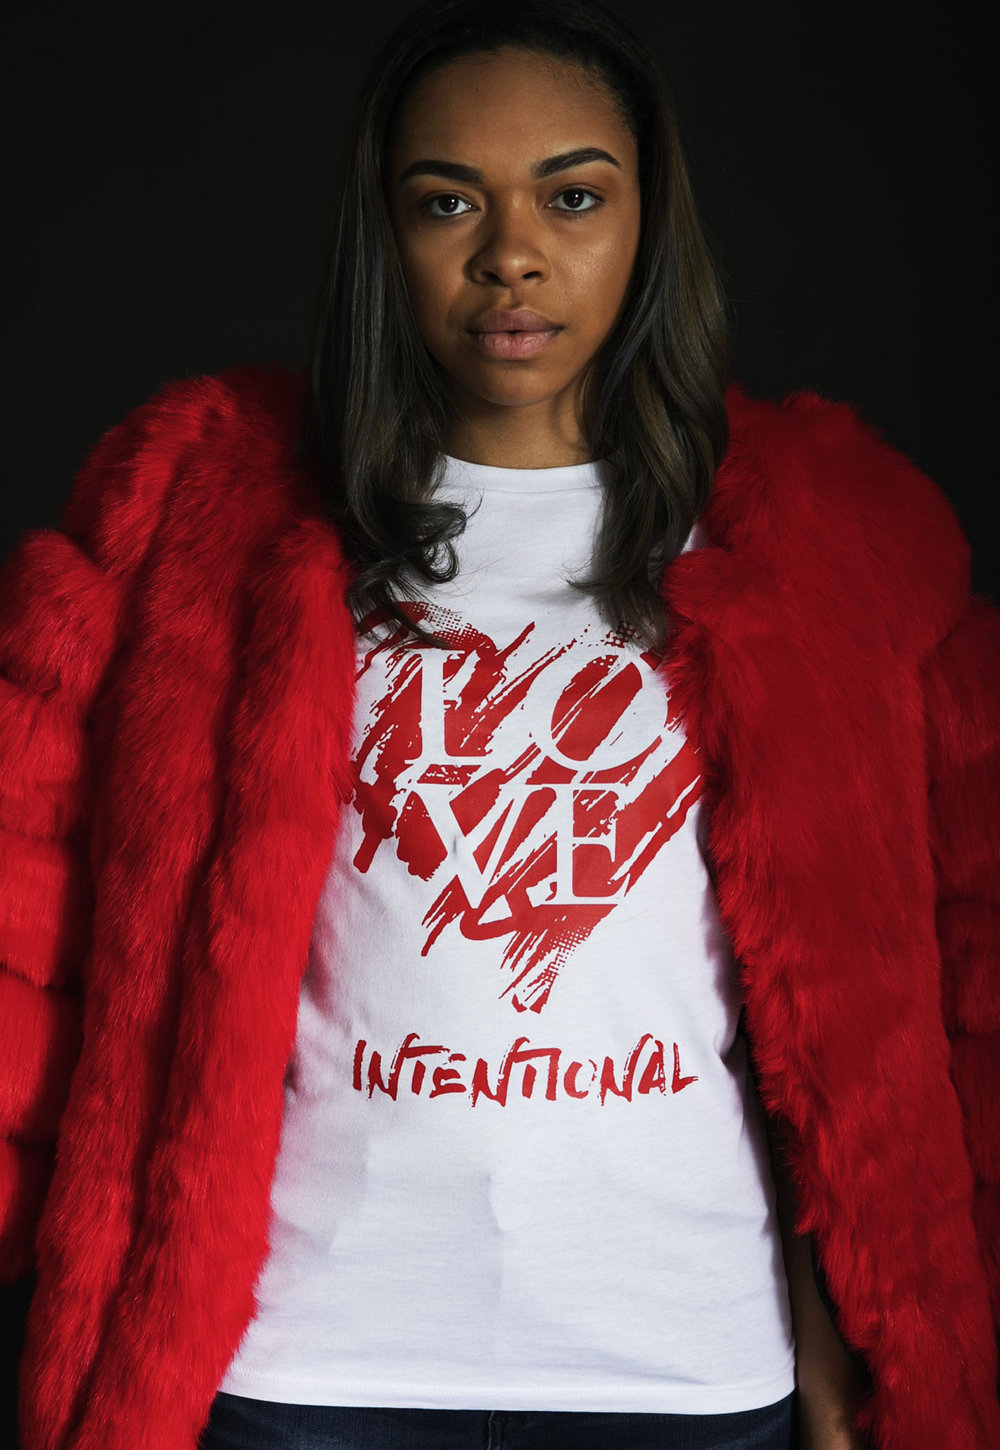 Love International Tee - $27 (Fur not included)